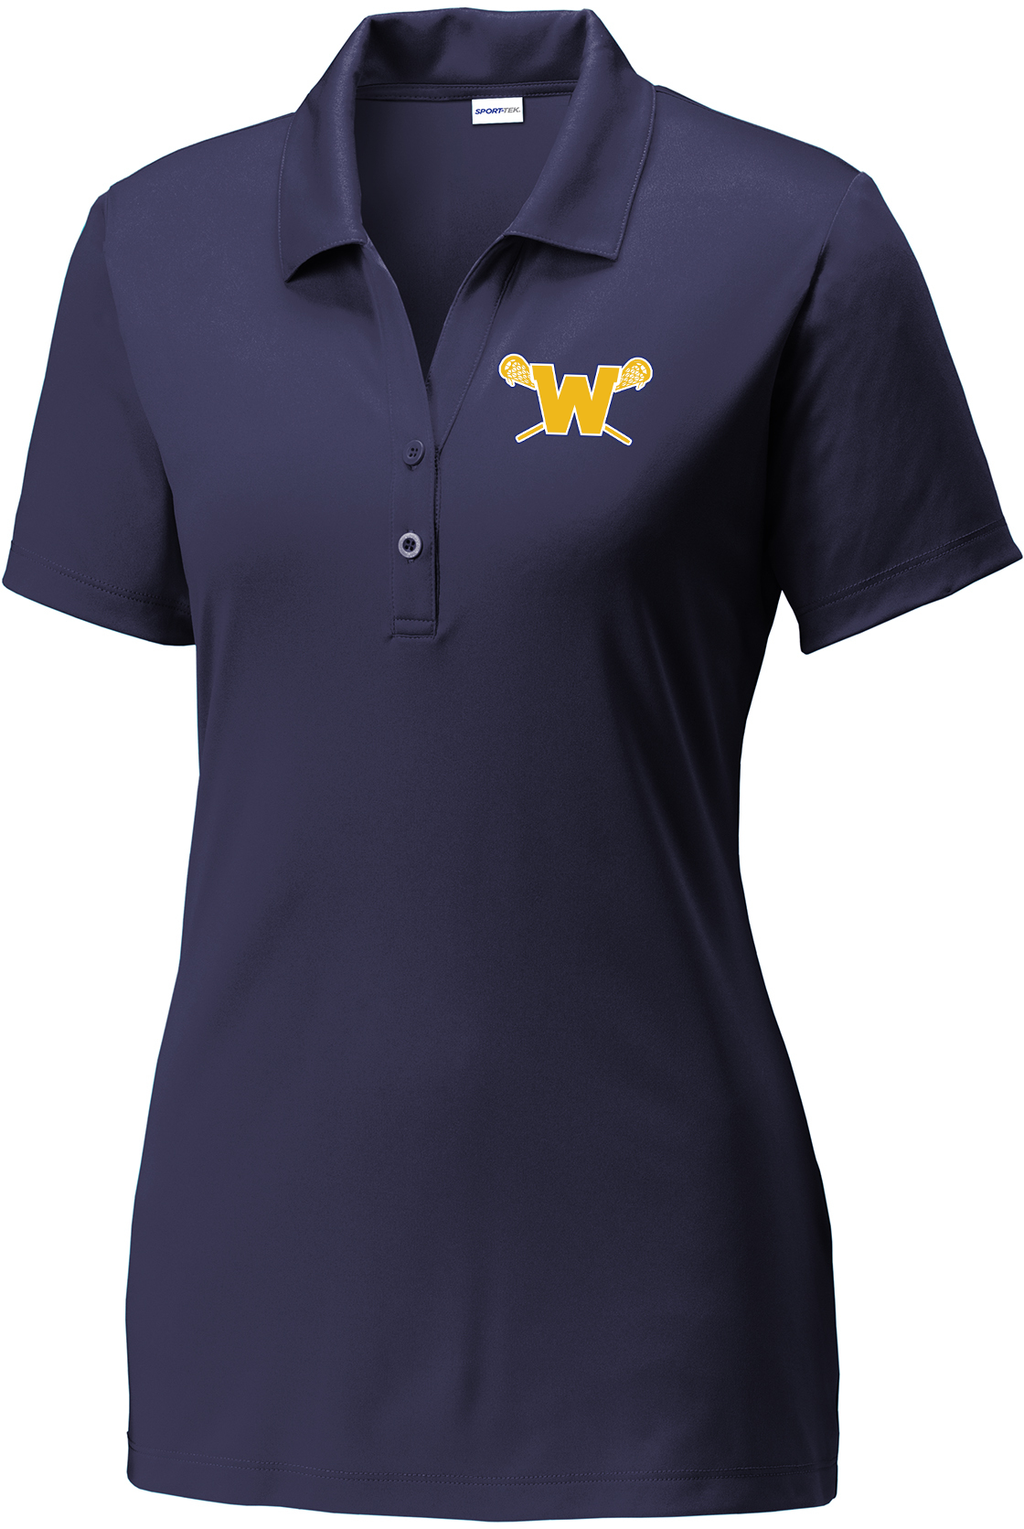 Webster Lacrosse Navy Women's Polo